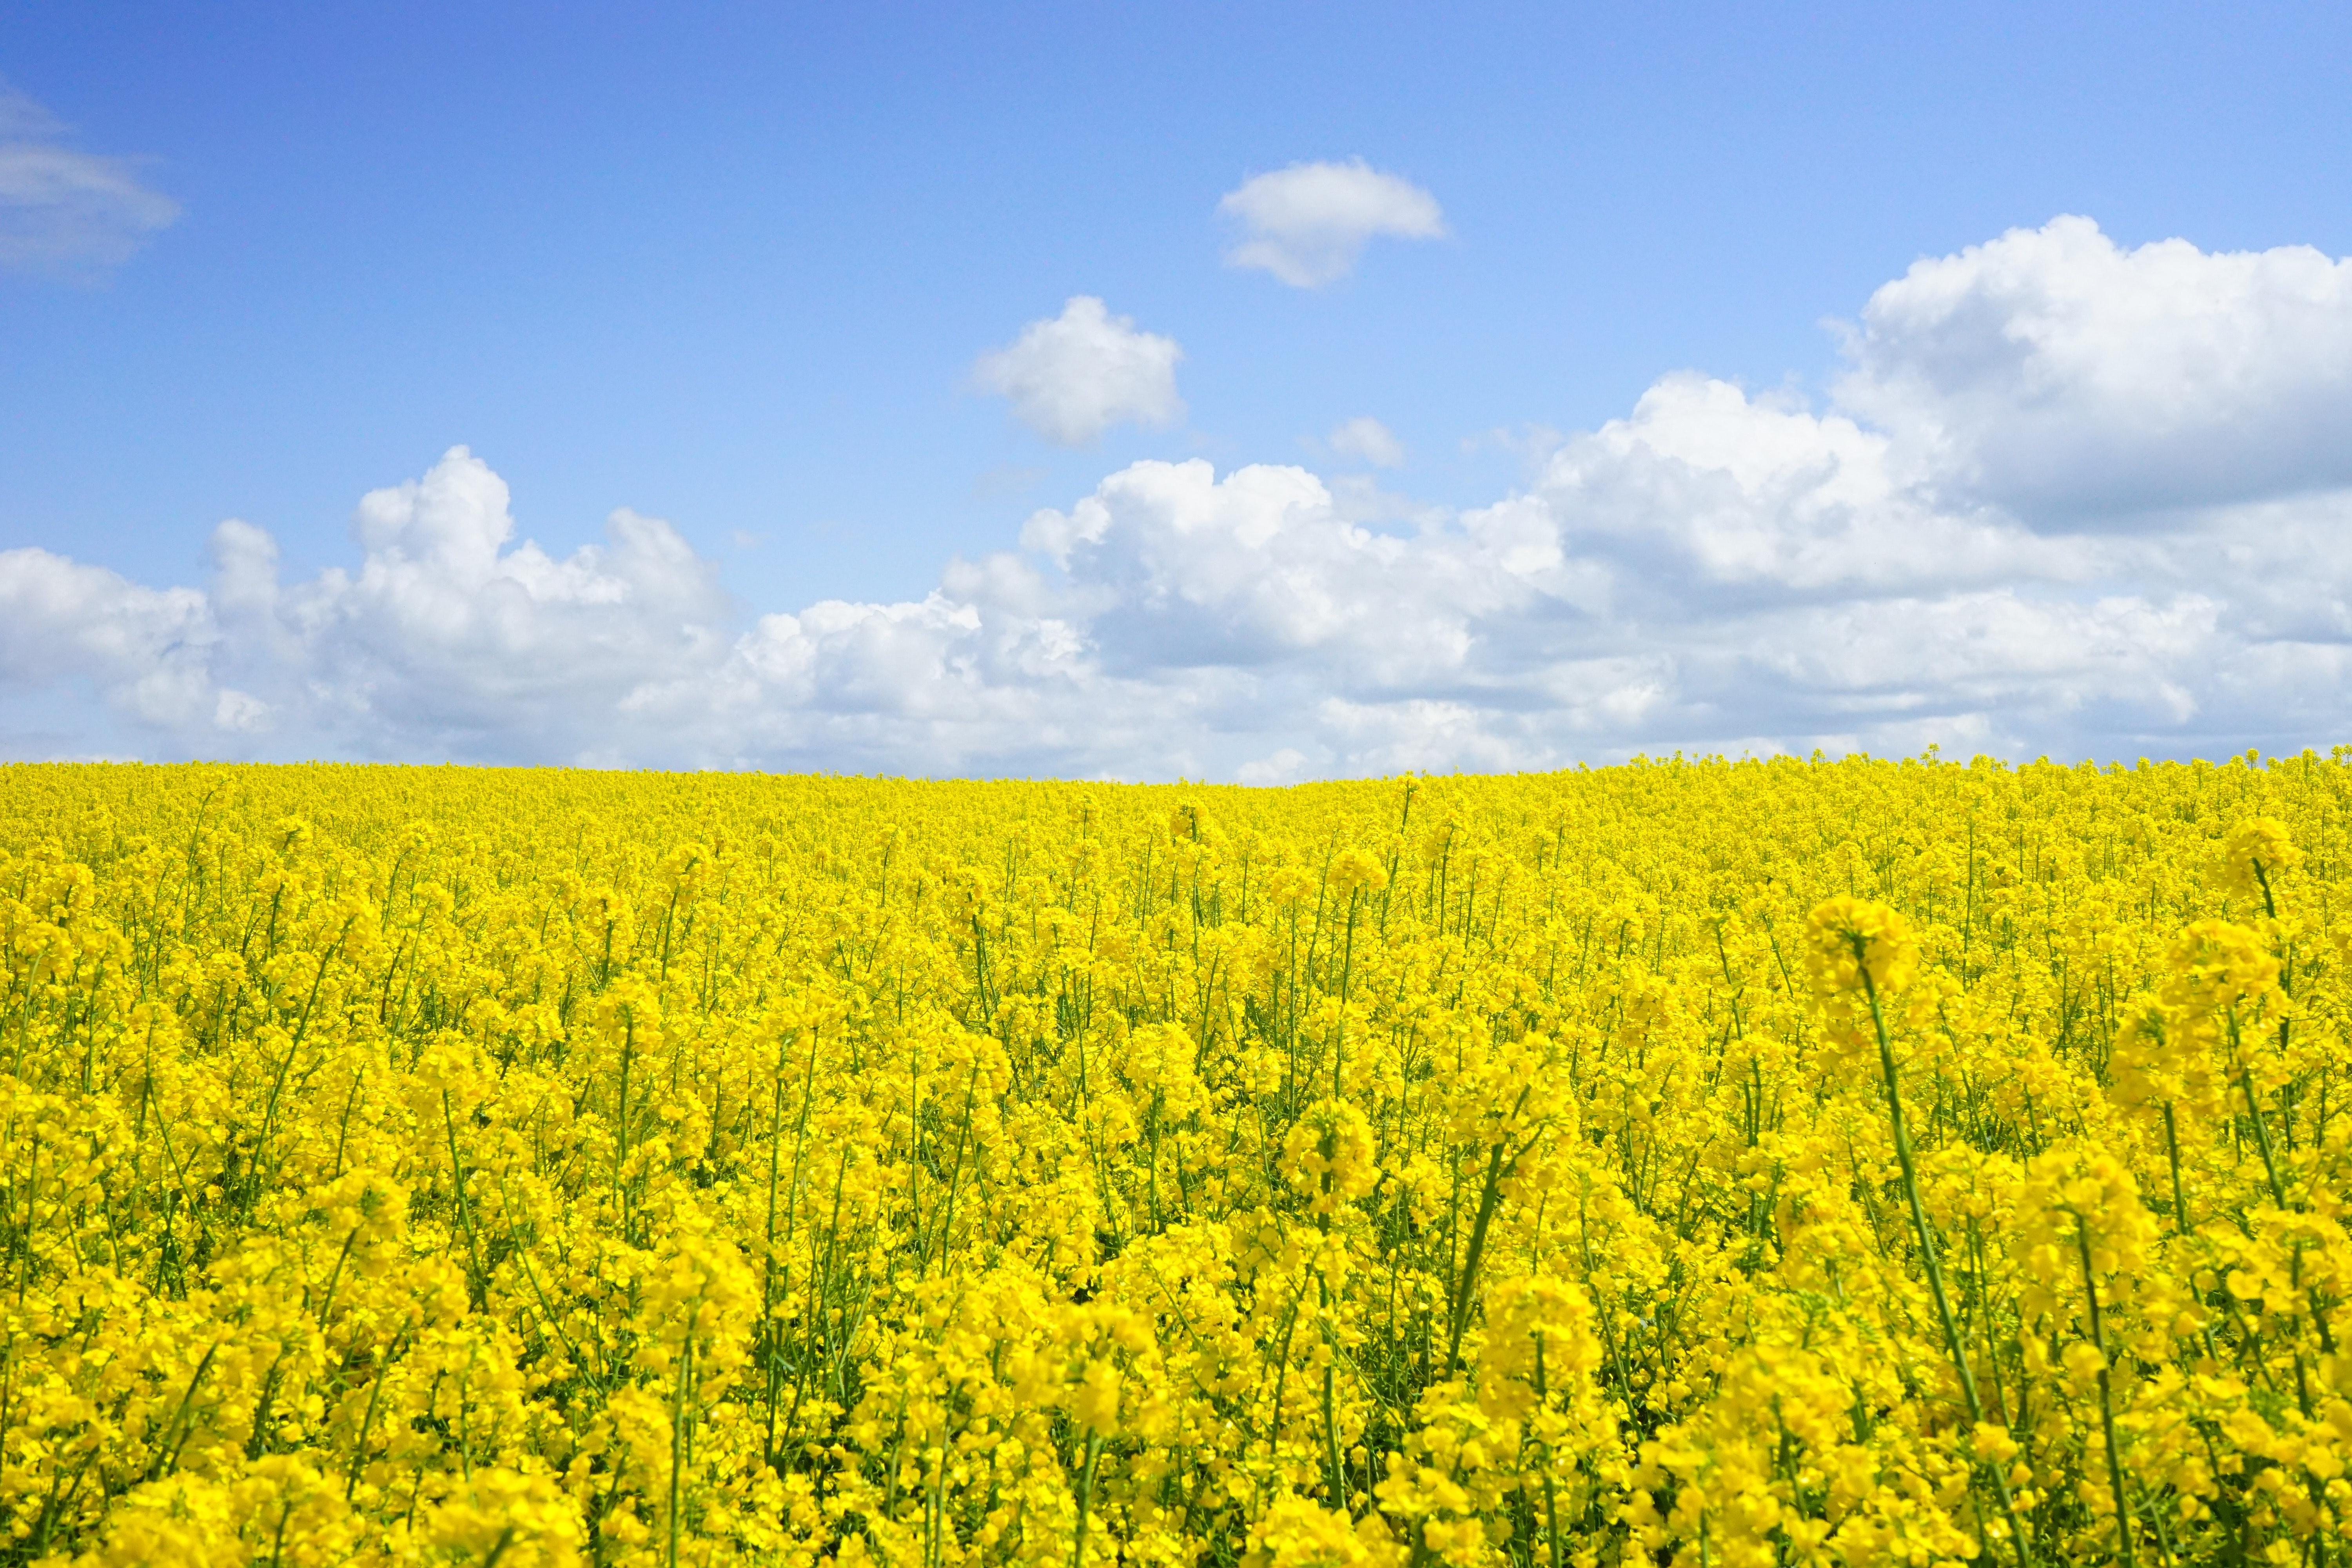 Yellow Flower Field Under Blue Cloudy Sky during Daytime · Free ...